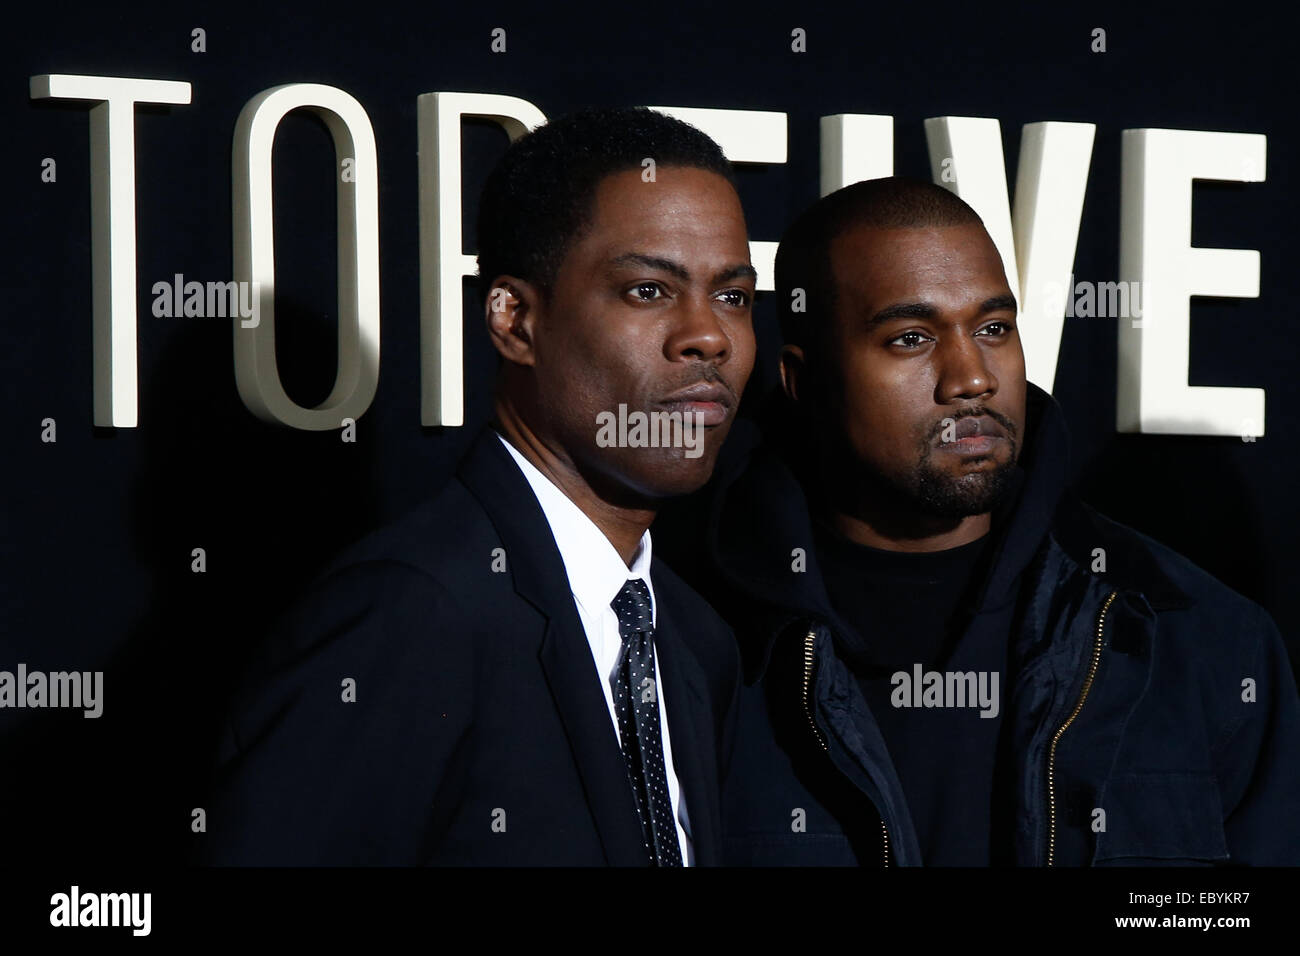 NEW YORK-DEC 3: Comedian/actor Chris Rock and rapper Kanye West attend the 'Top Five' premiere at the Ziegfeld - Stock Image